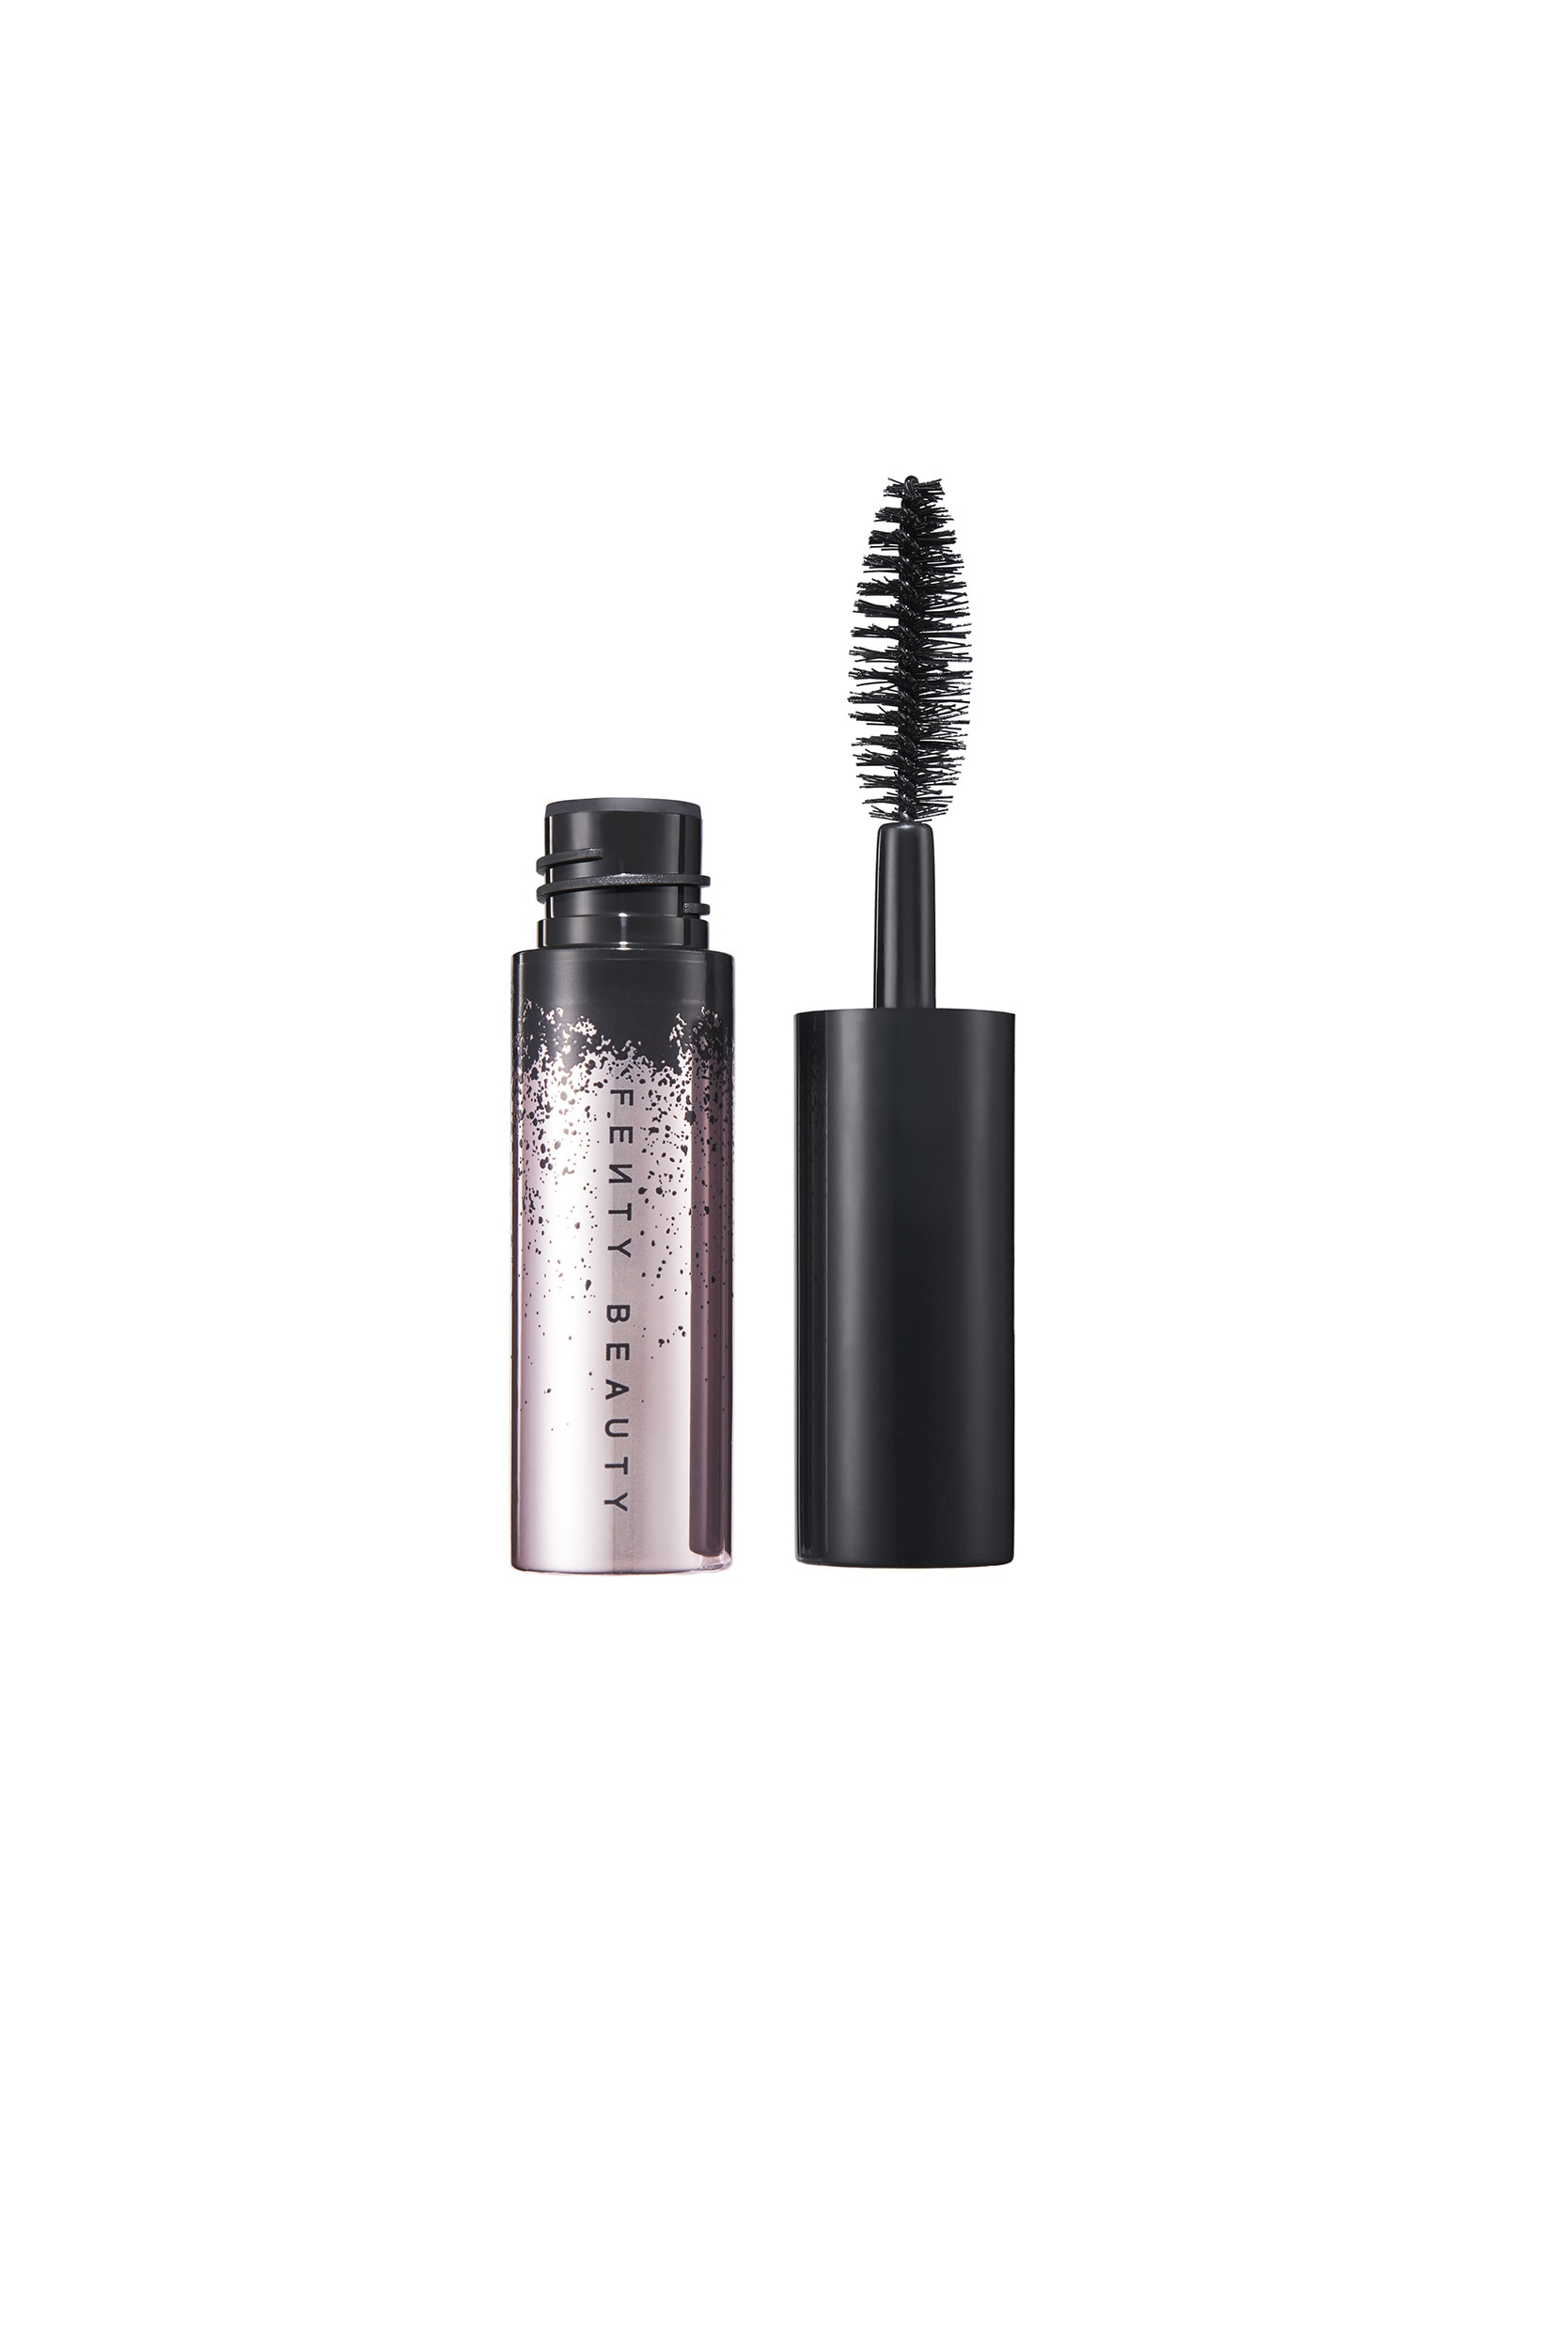 FULL FRONTAL VOLUME, LIFT & CURL MASCARA MINI (MASCARA DE PESTAÑAS MINI)